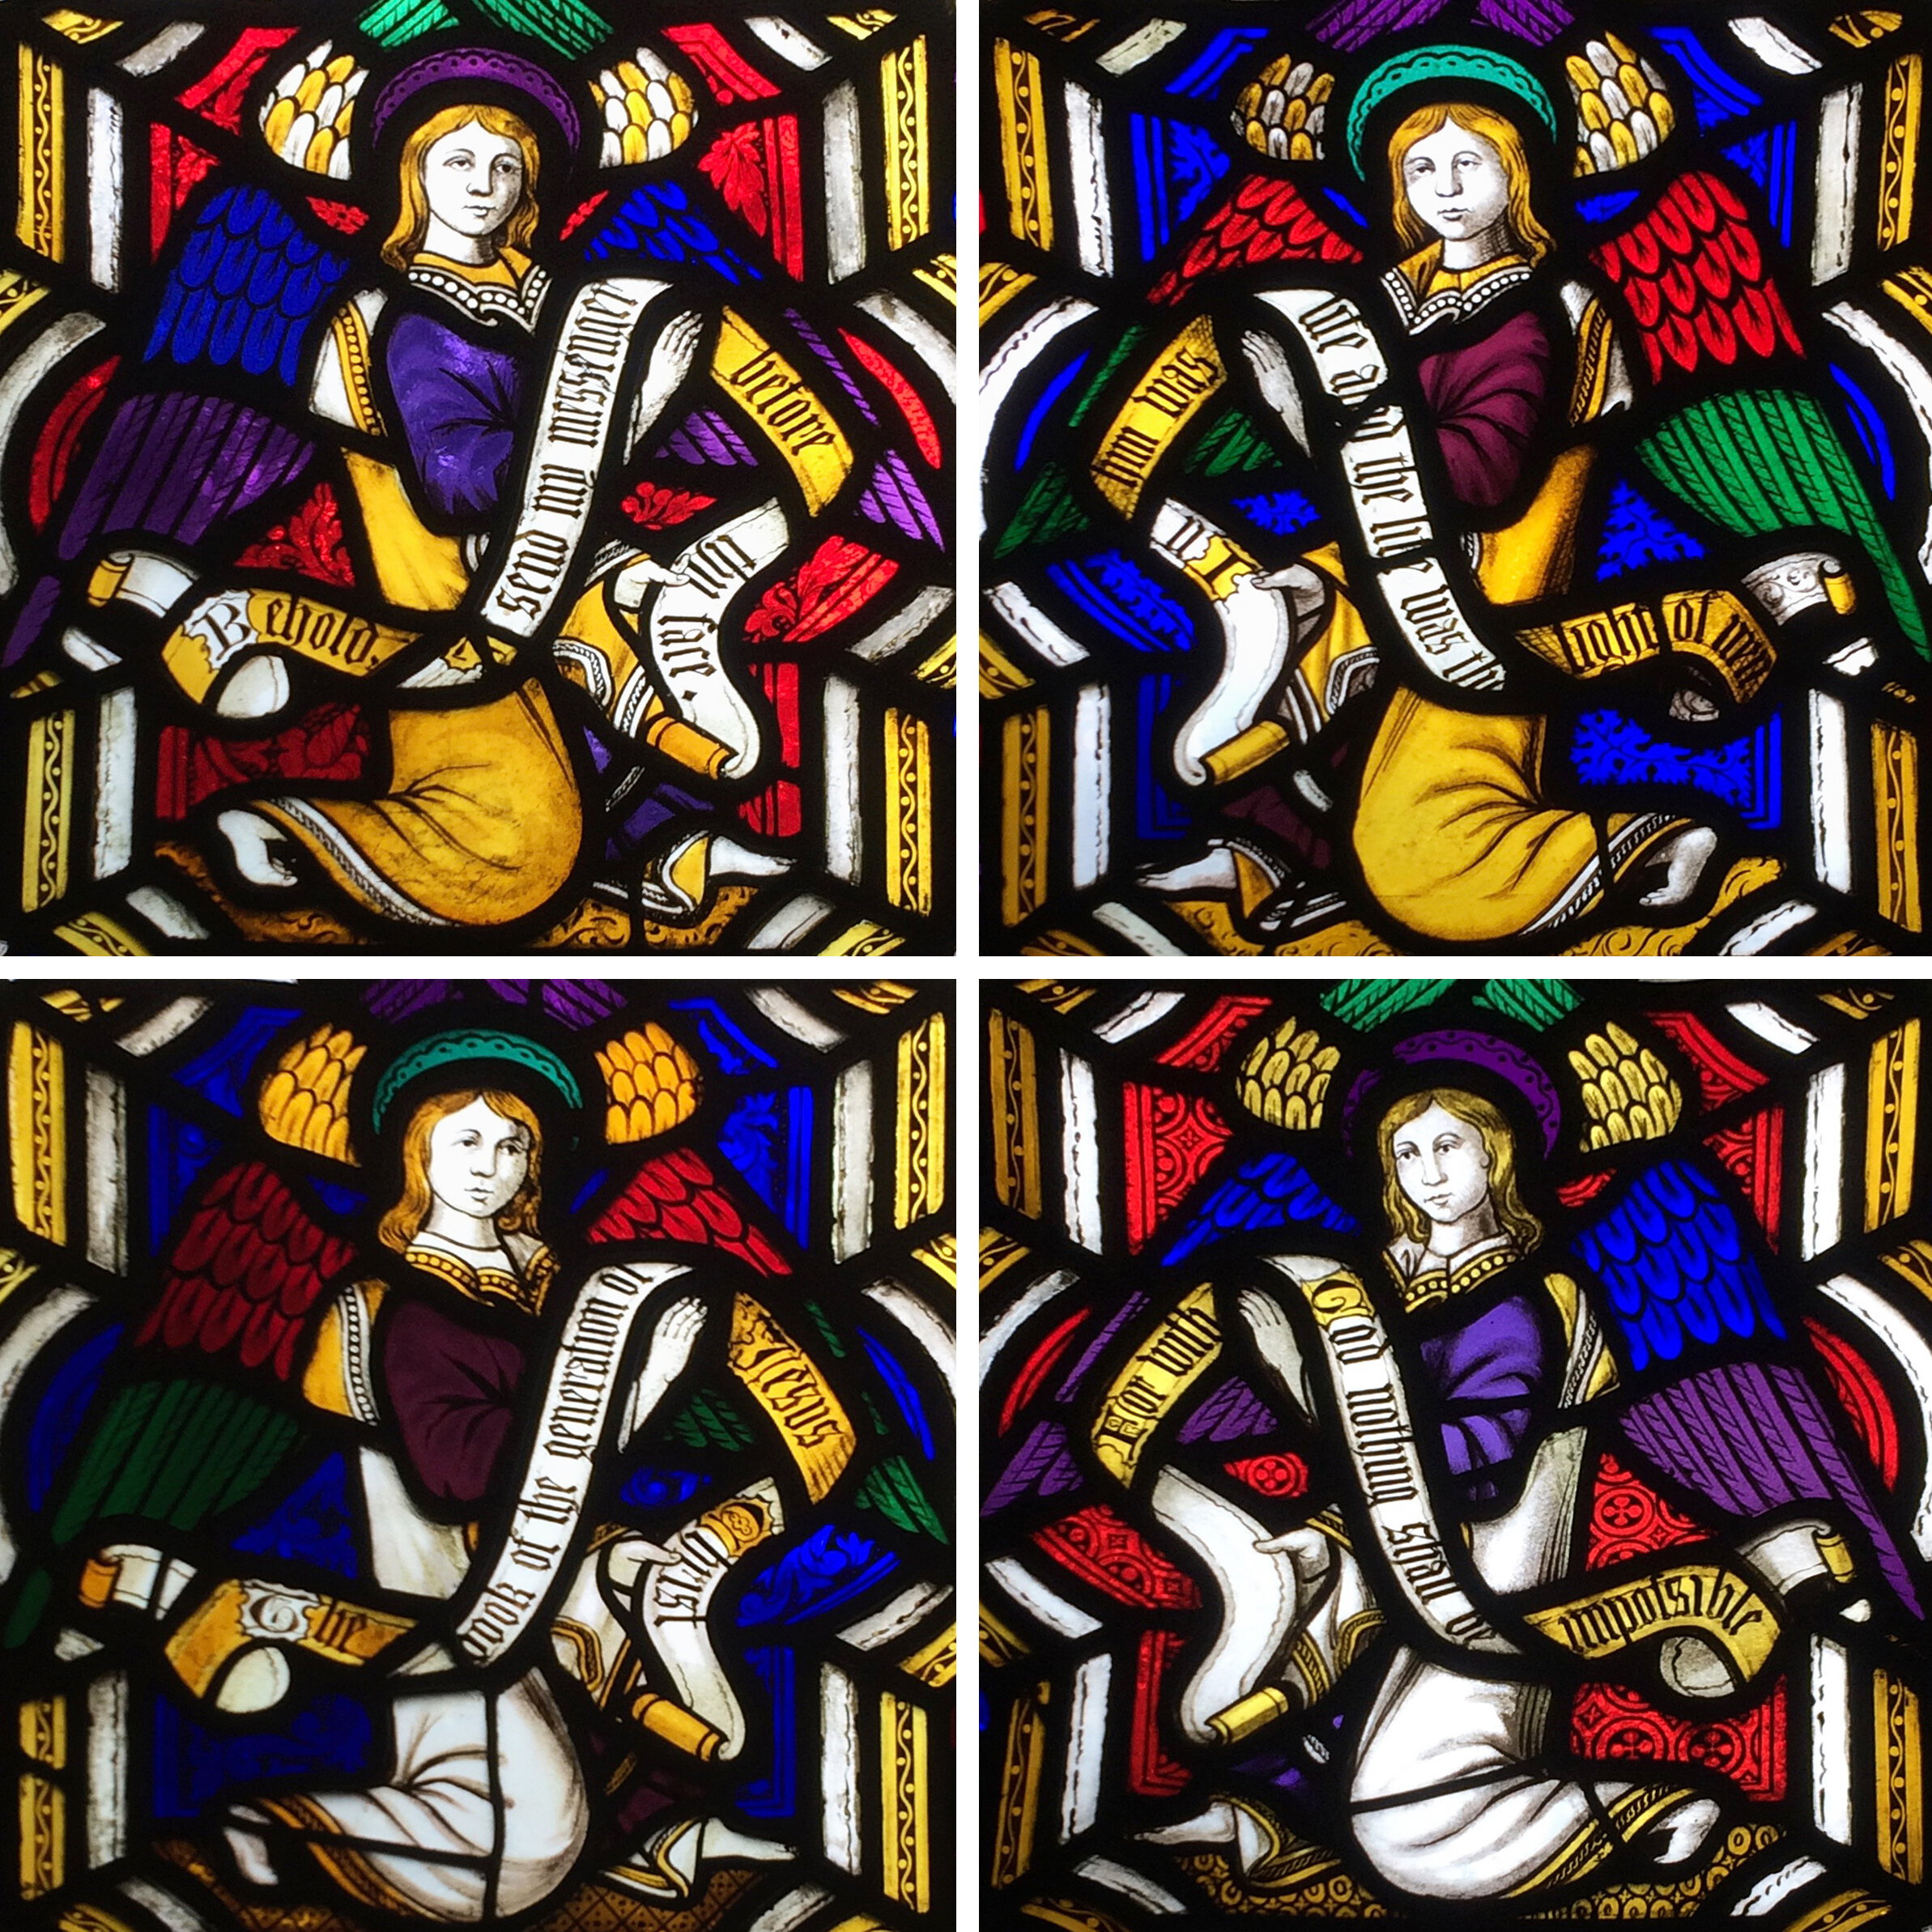 Angels from the bottom of the Barford window